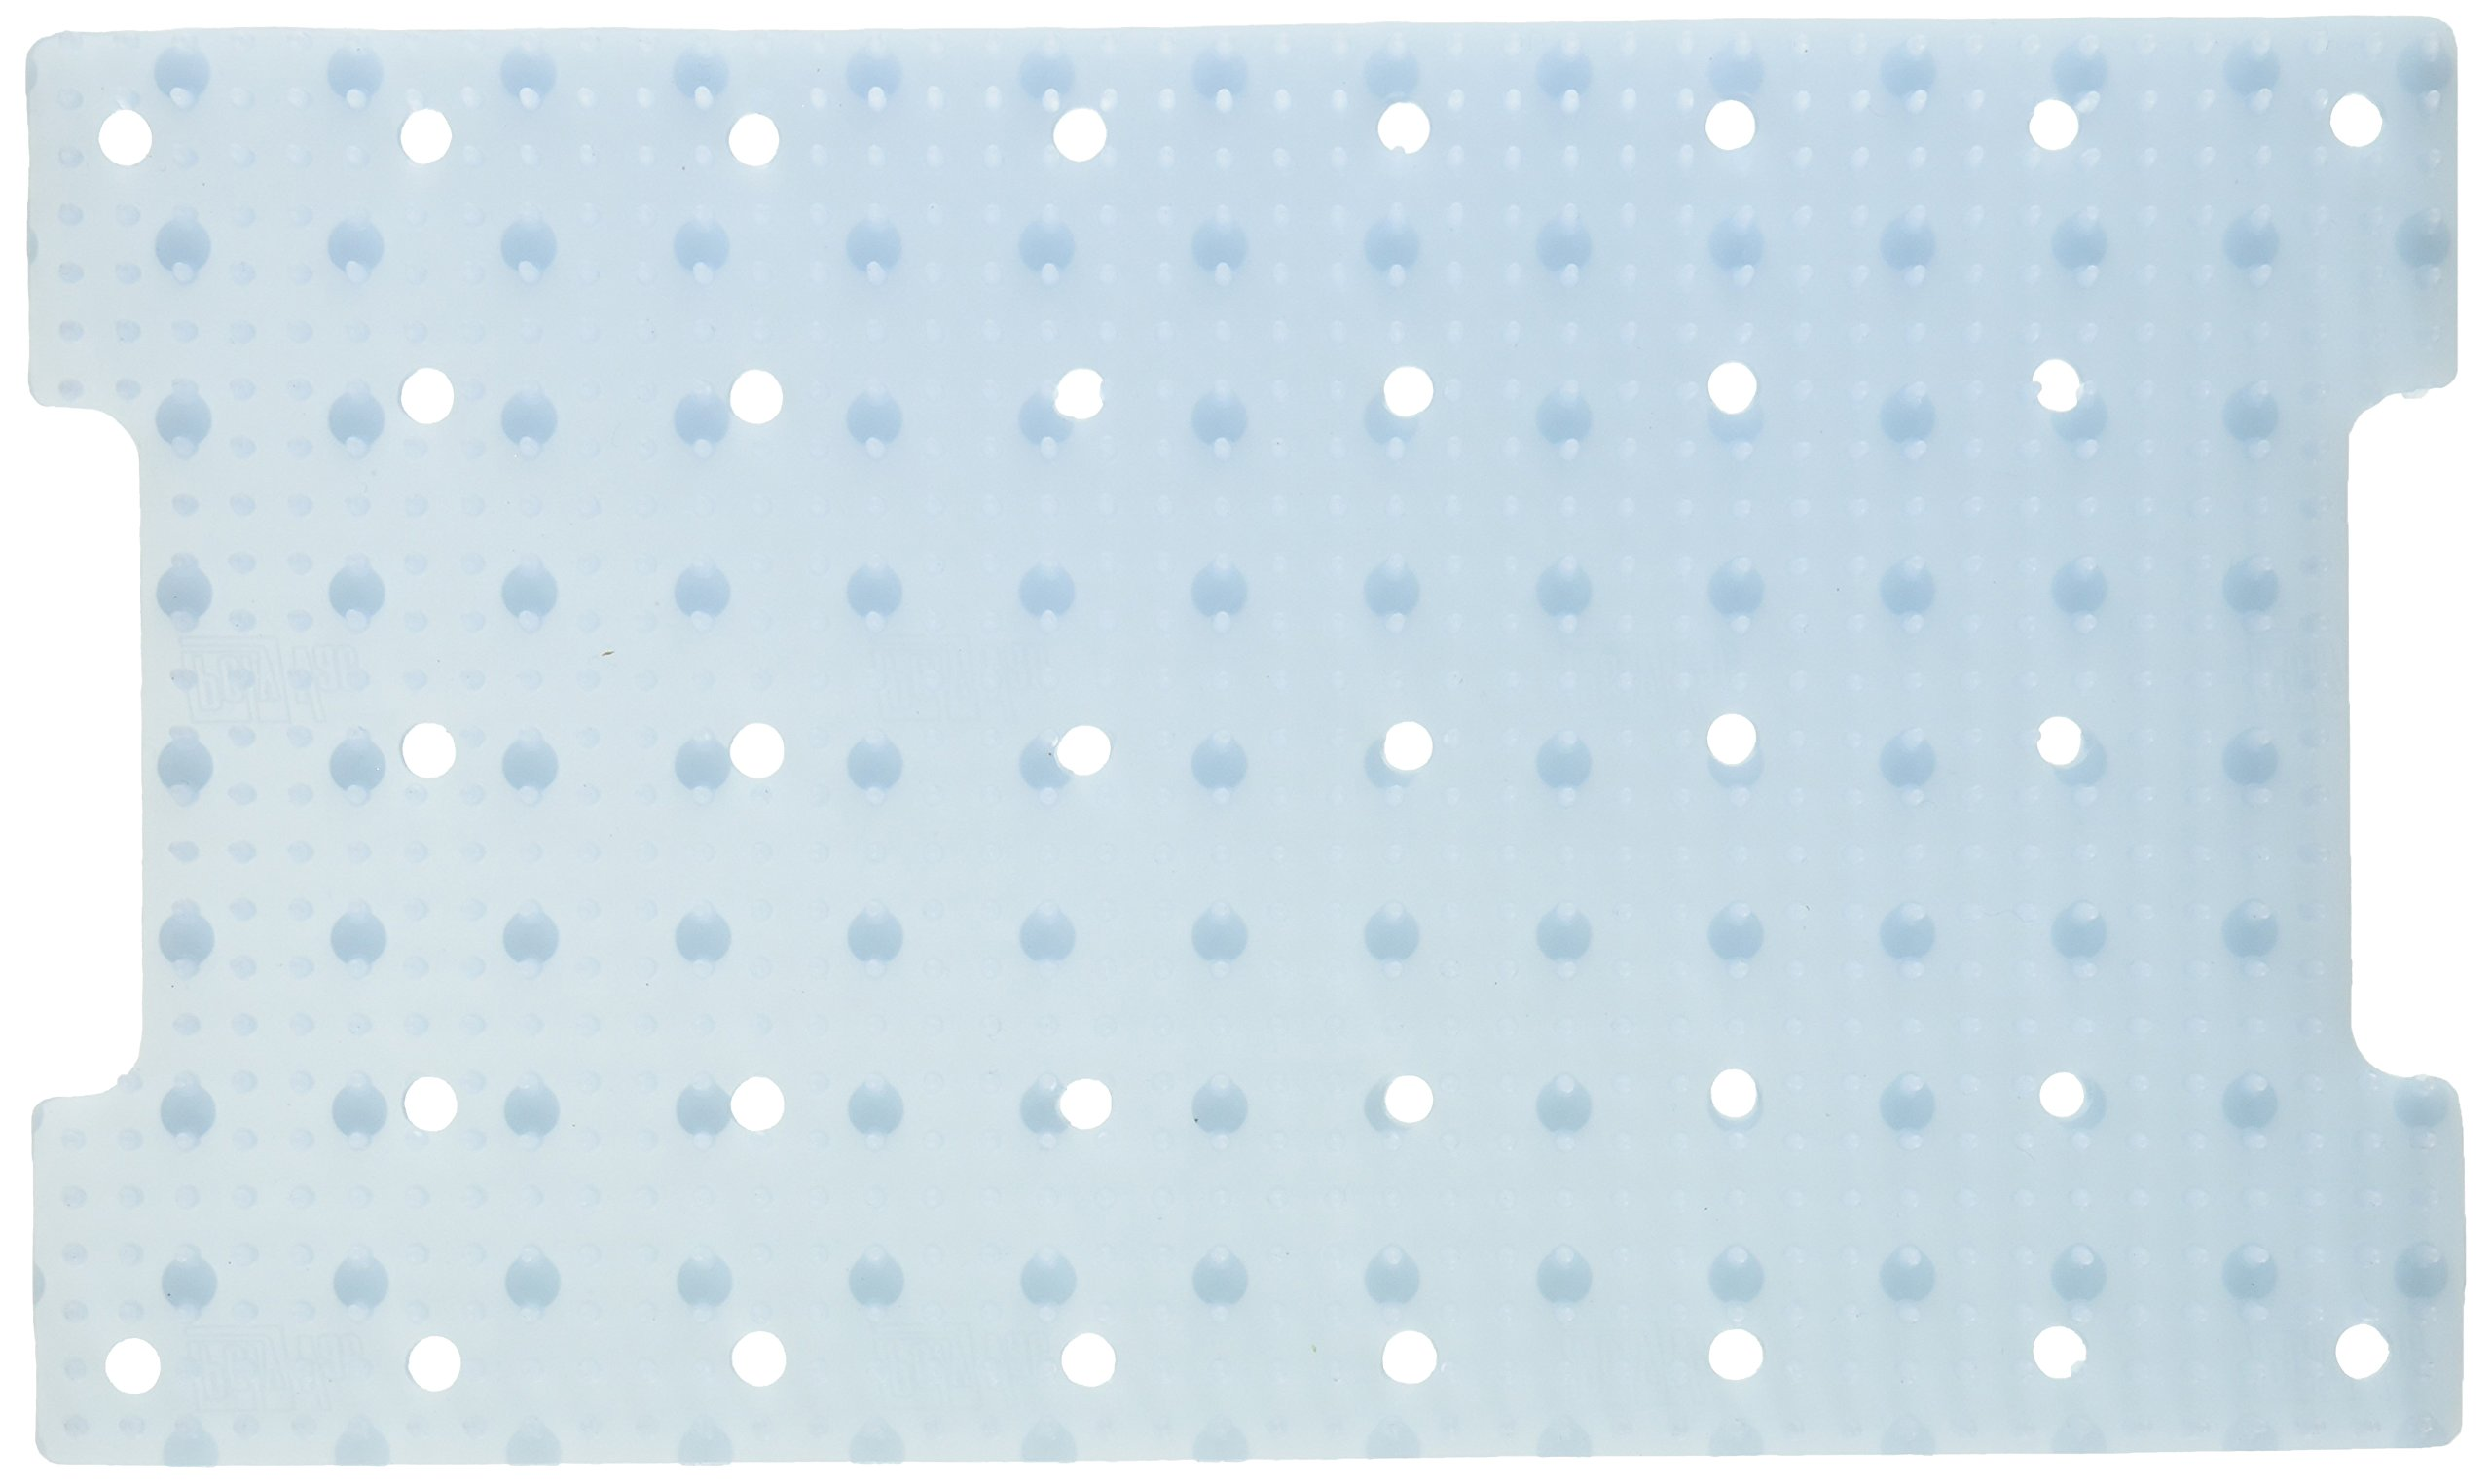 Miltex 3200100A Replacement Mat for Tray 3-200100 and 3-200200, 11'' Length x 7'' Width